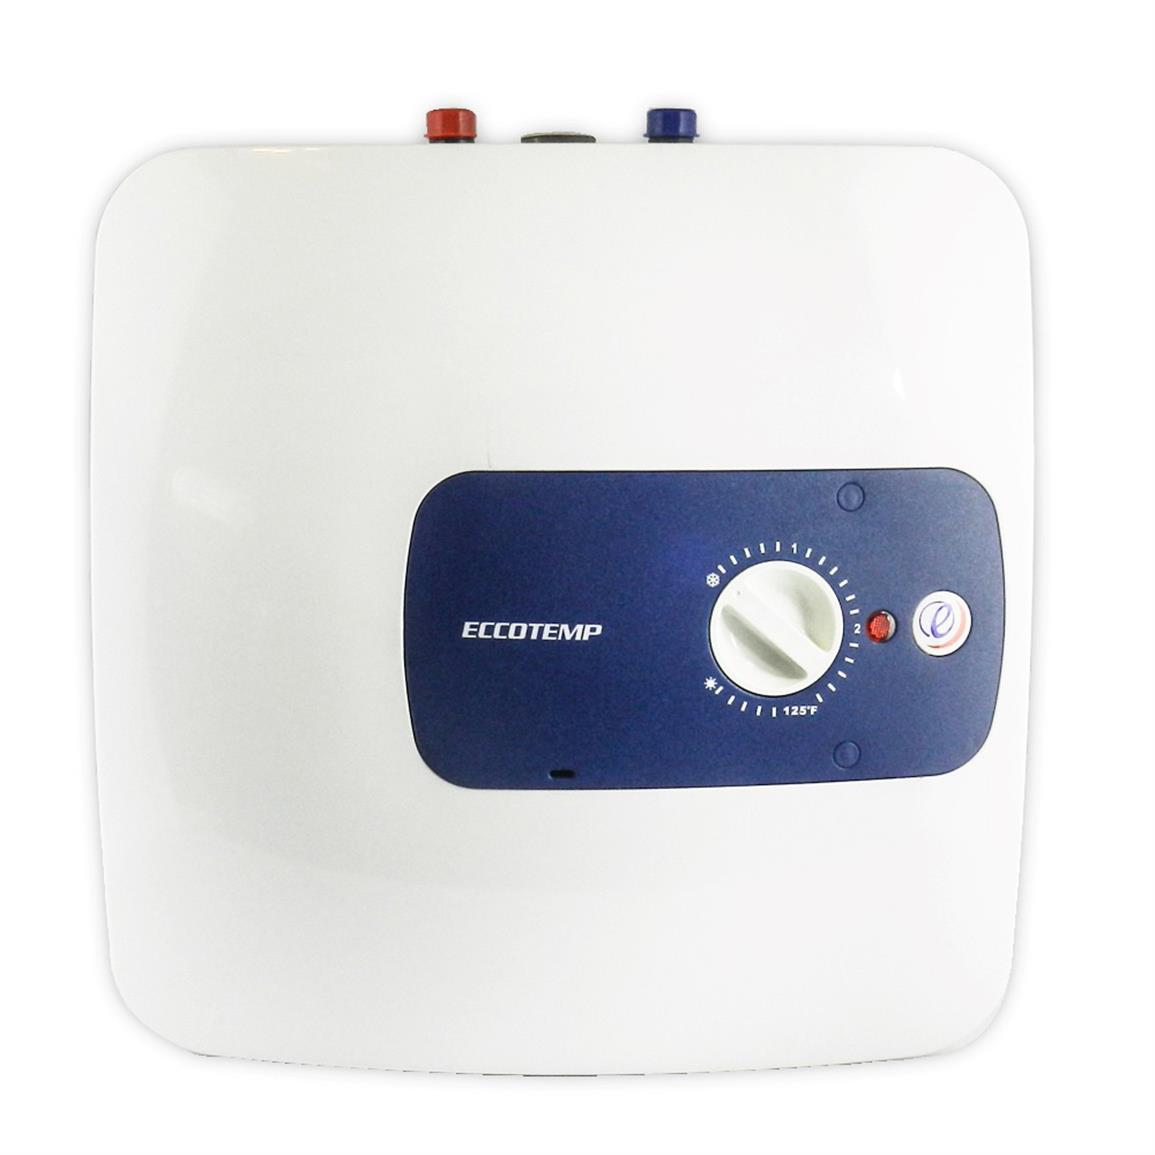 Eccotemp Mini Tank Electric Water Heater, EM 2.5